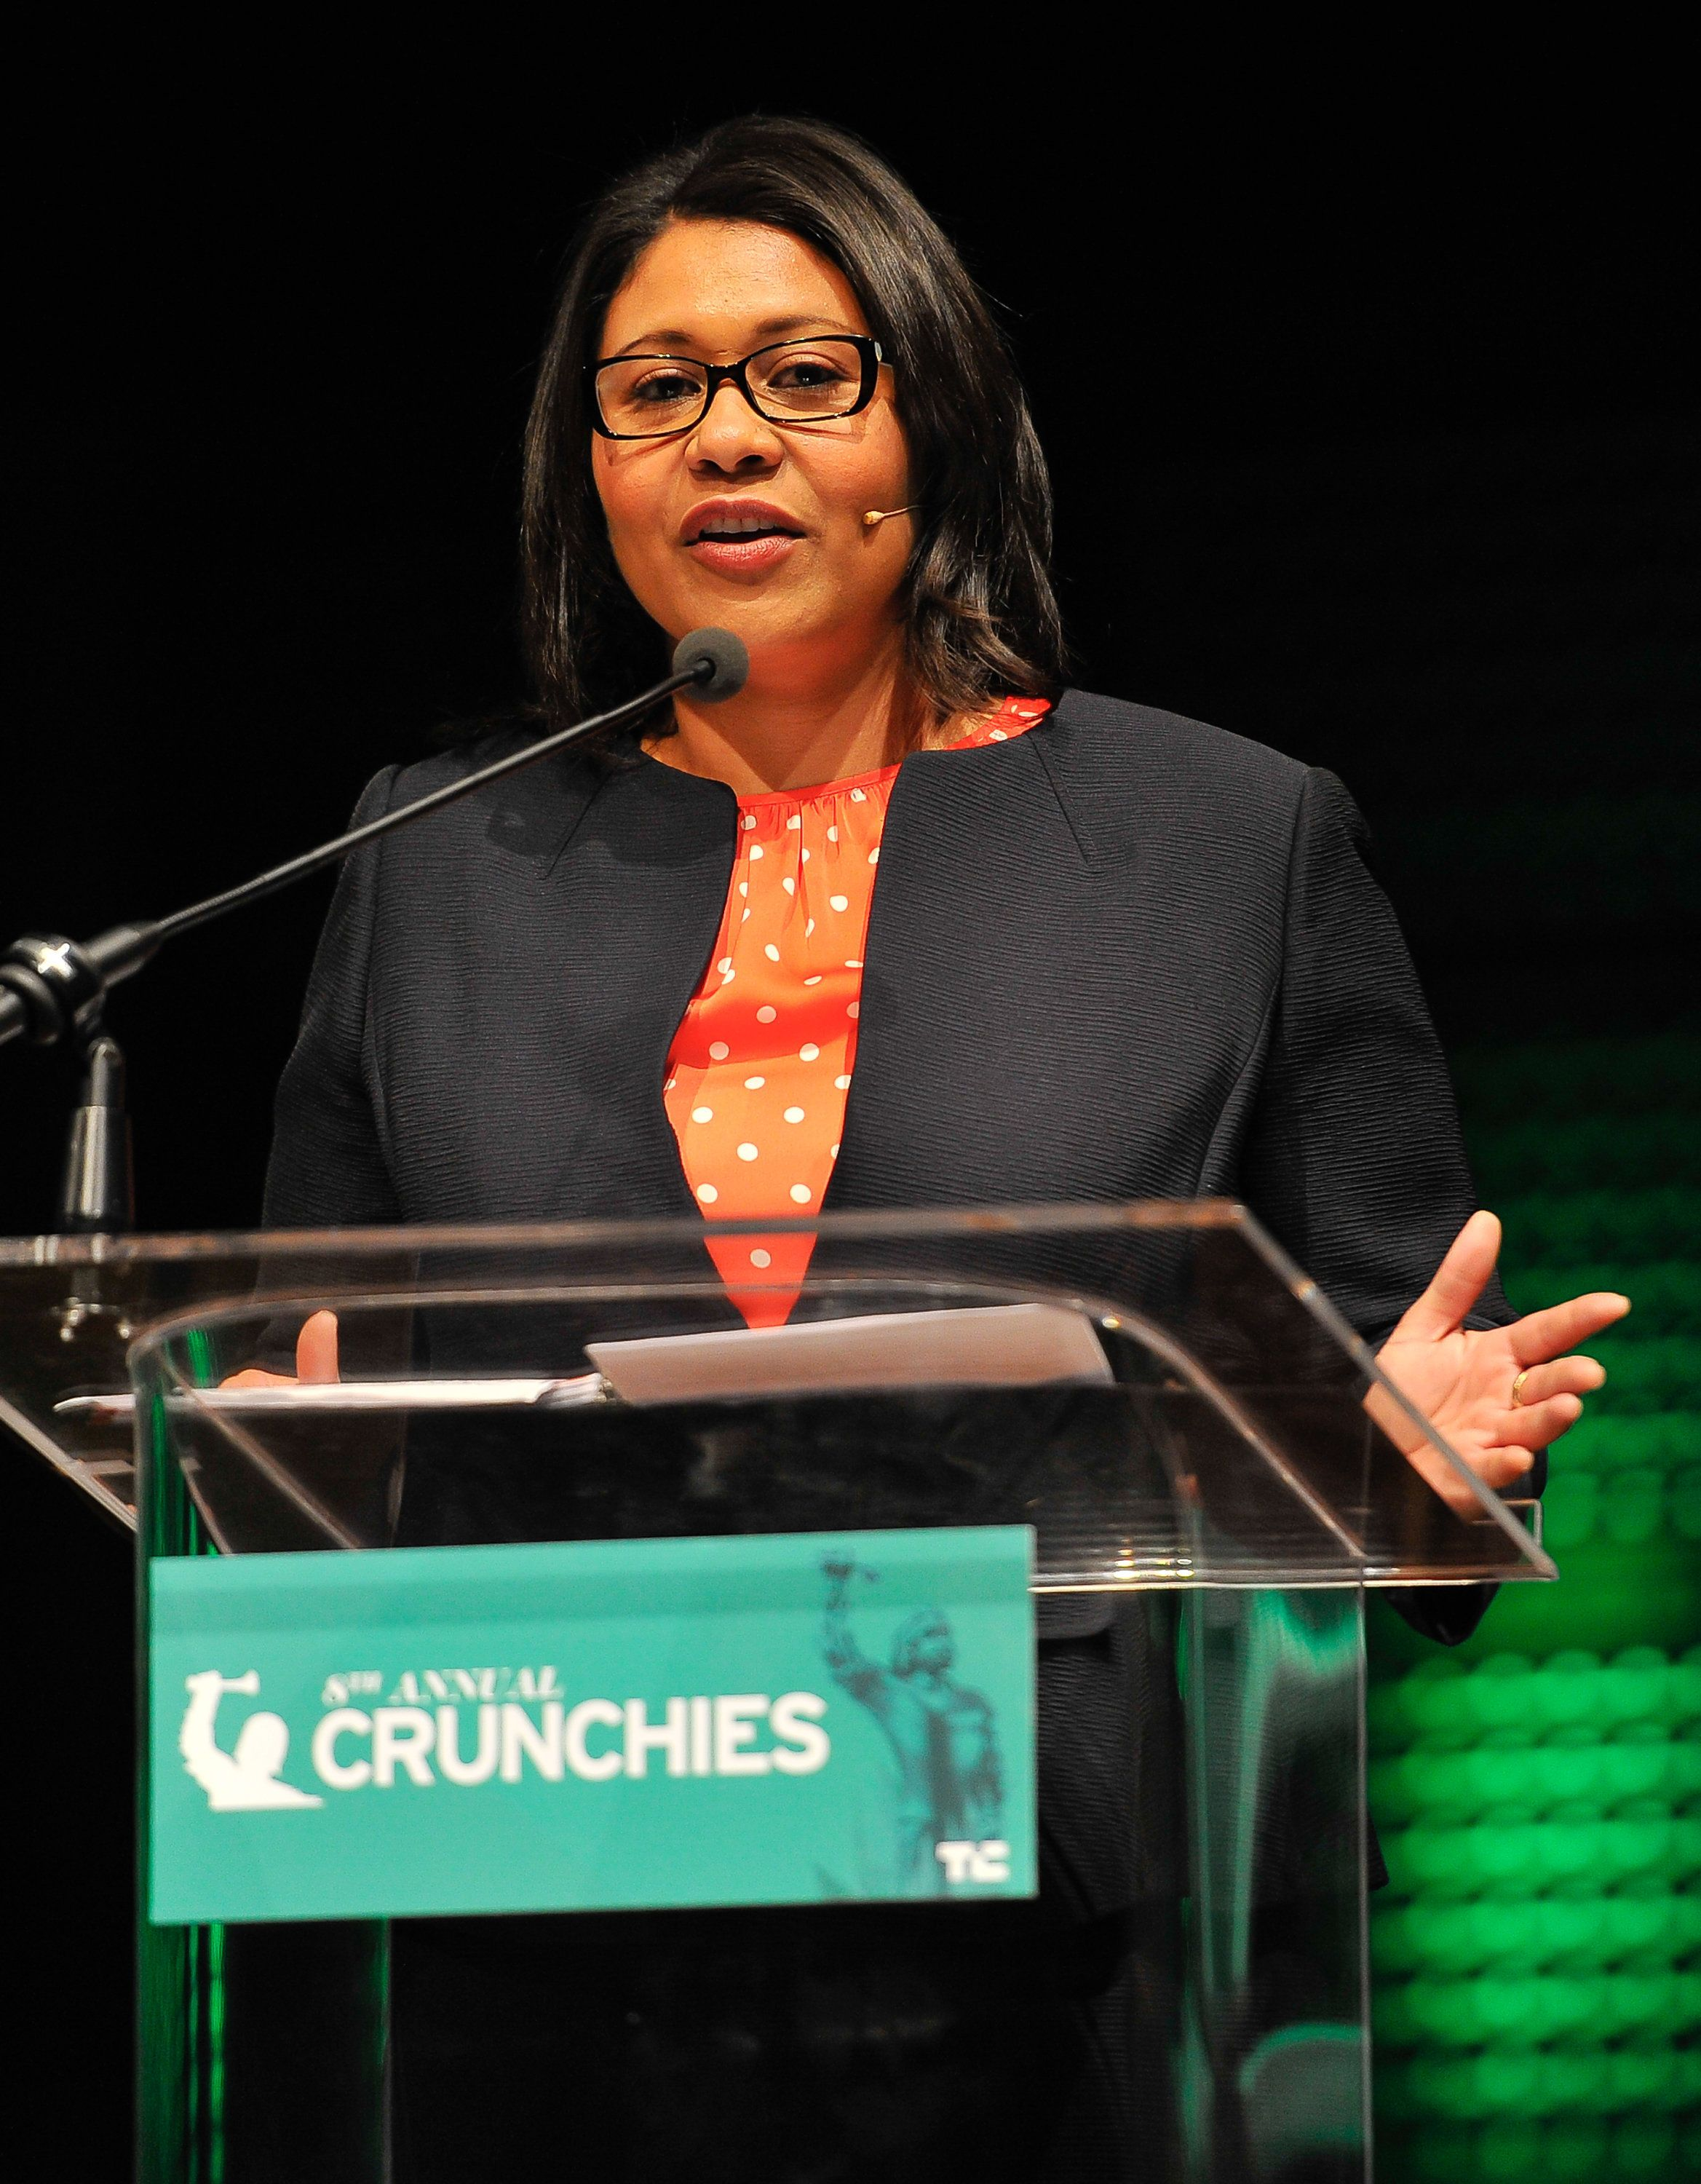 SAN FRANCISCO, CA - FEBRUARY 05: London Breed, President of the San Francisco Board of Supervisors attends the TechCrunch 8th Annual Crunchies Awards at the Davies Symphony Hall on February 5, 2015 in San Francisco, California. (Photo by Steve Jennings/Getty Images for TechCrunch)